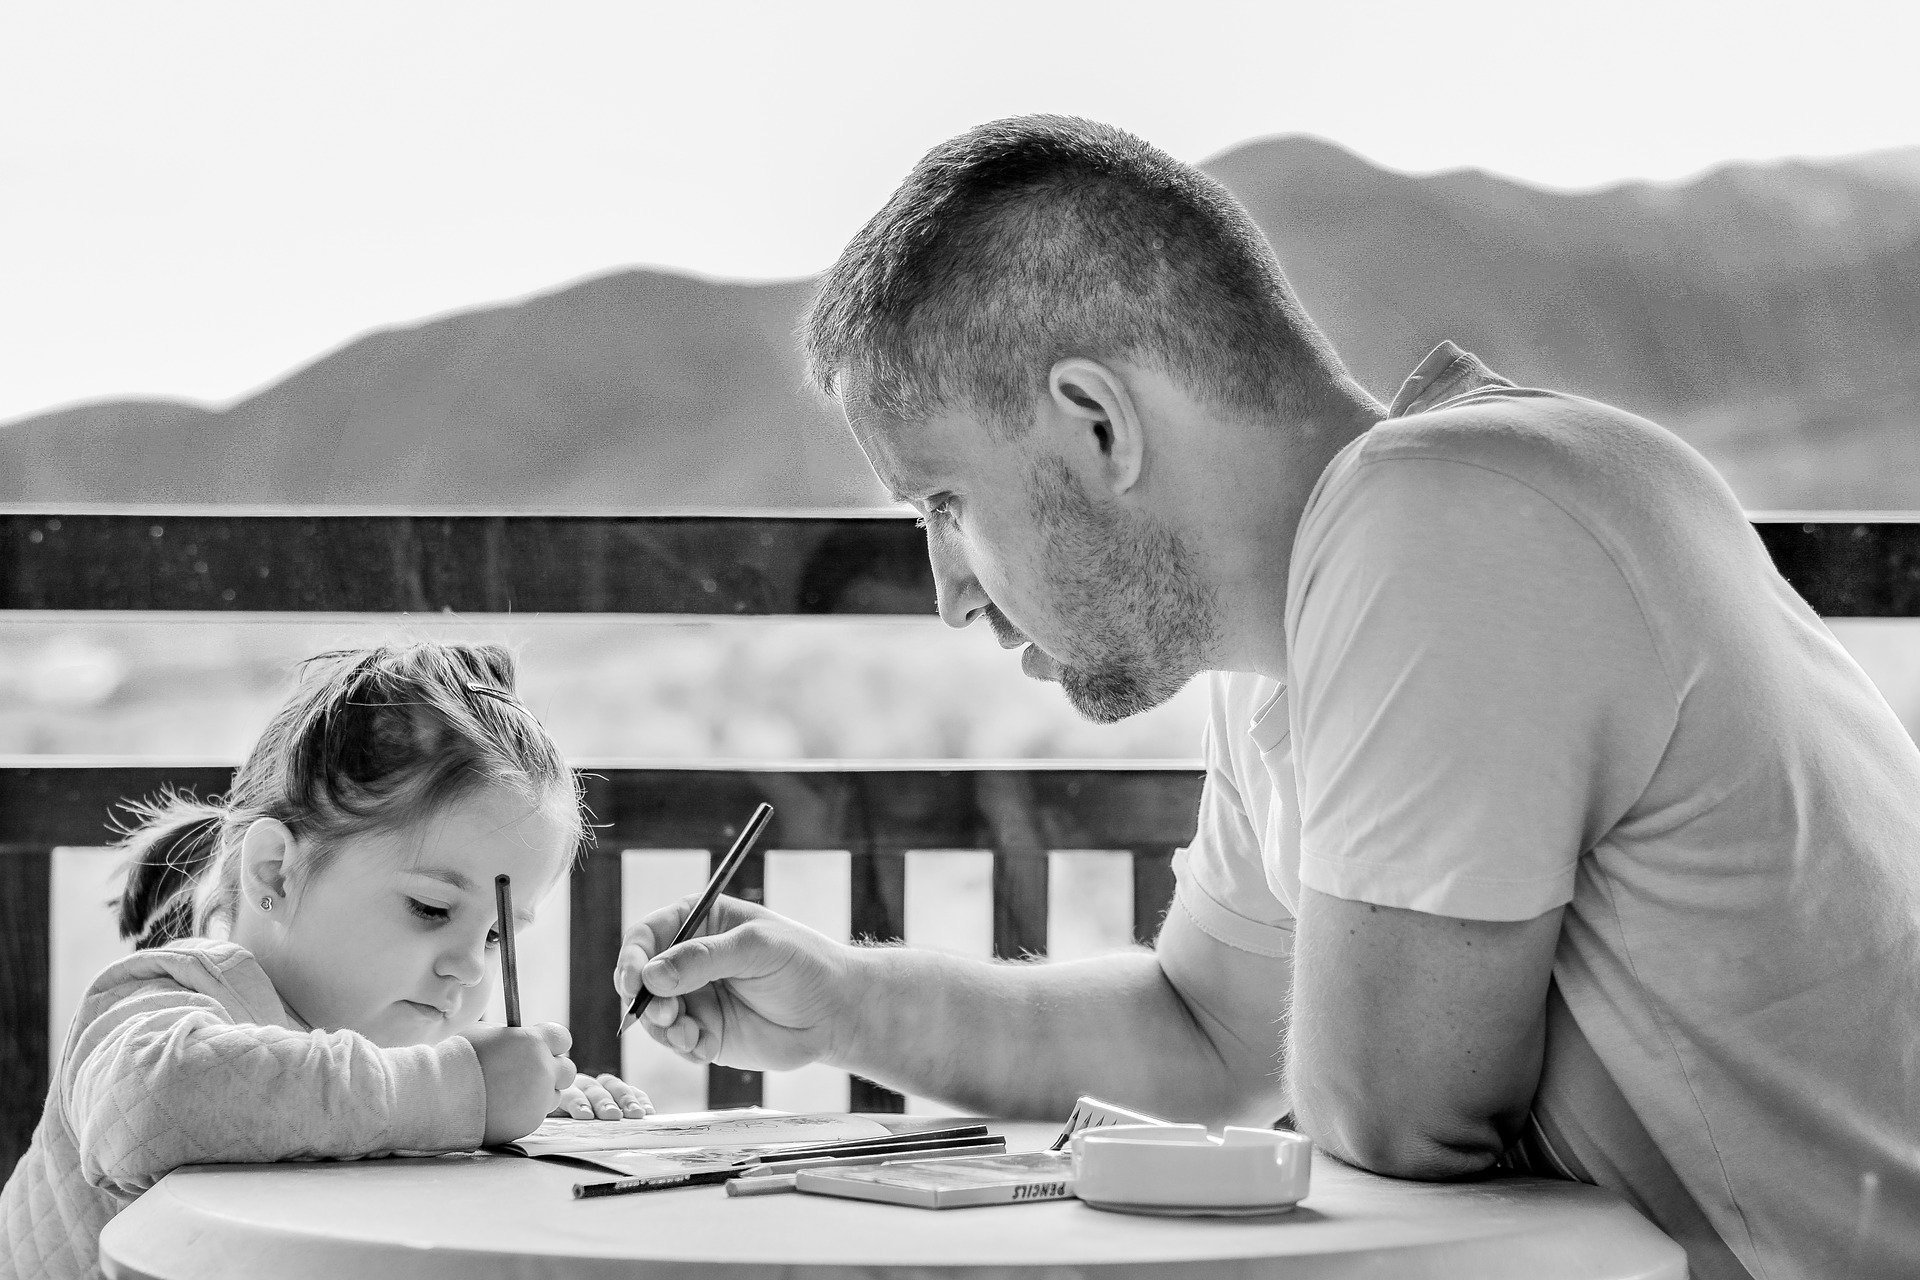 white dad and daughter coloring together